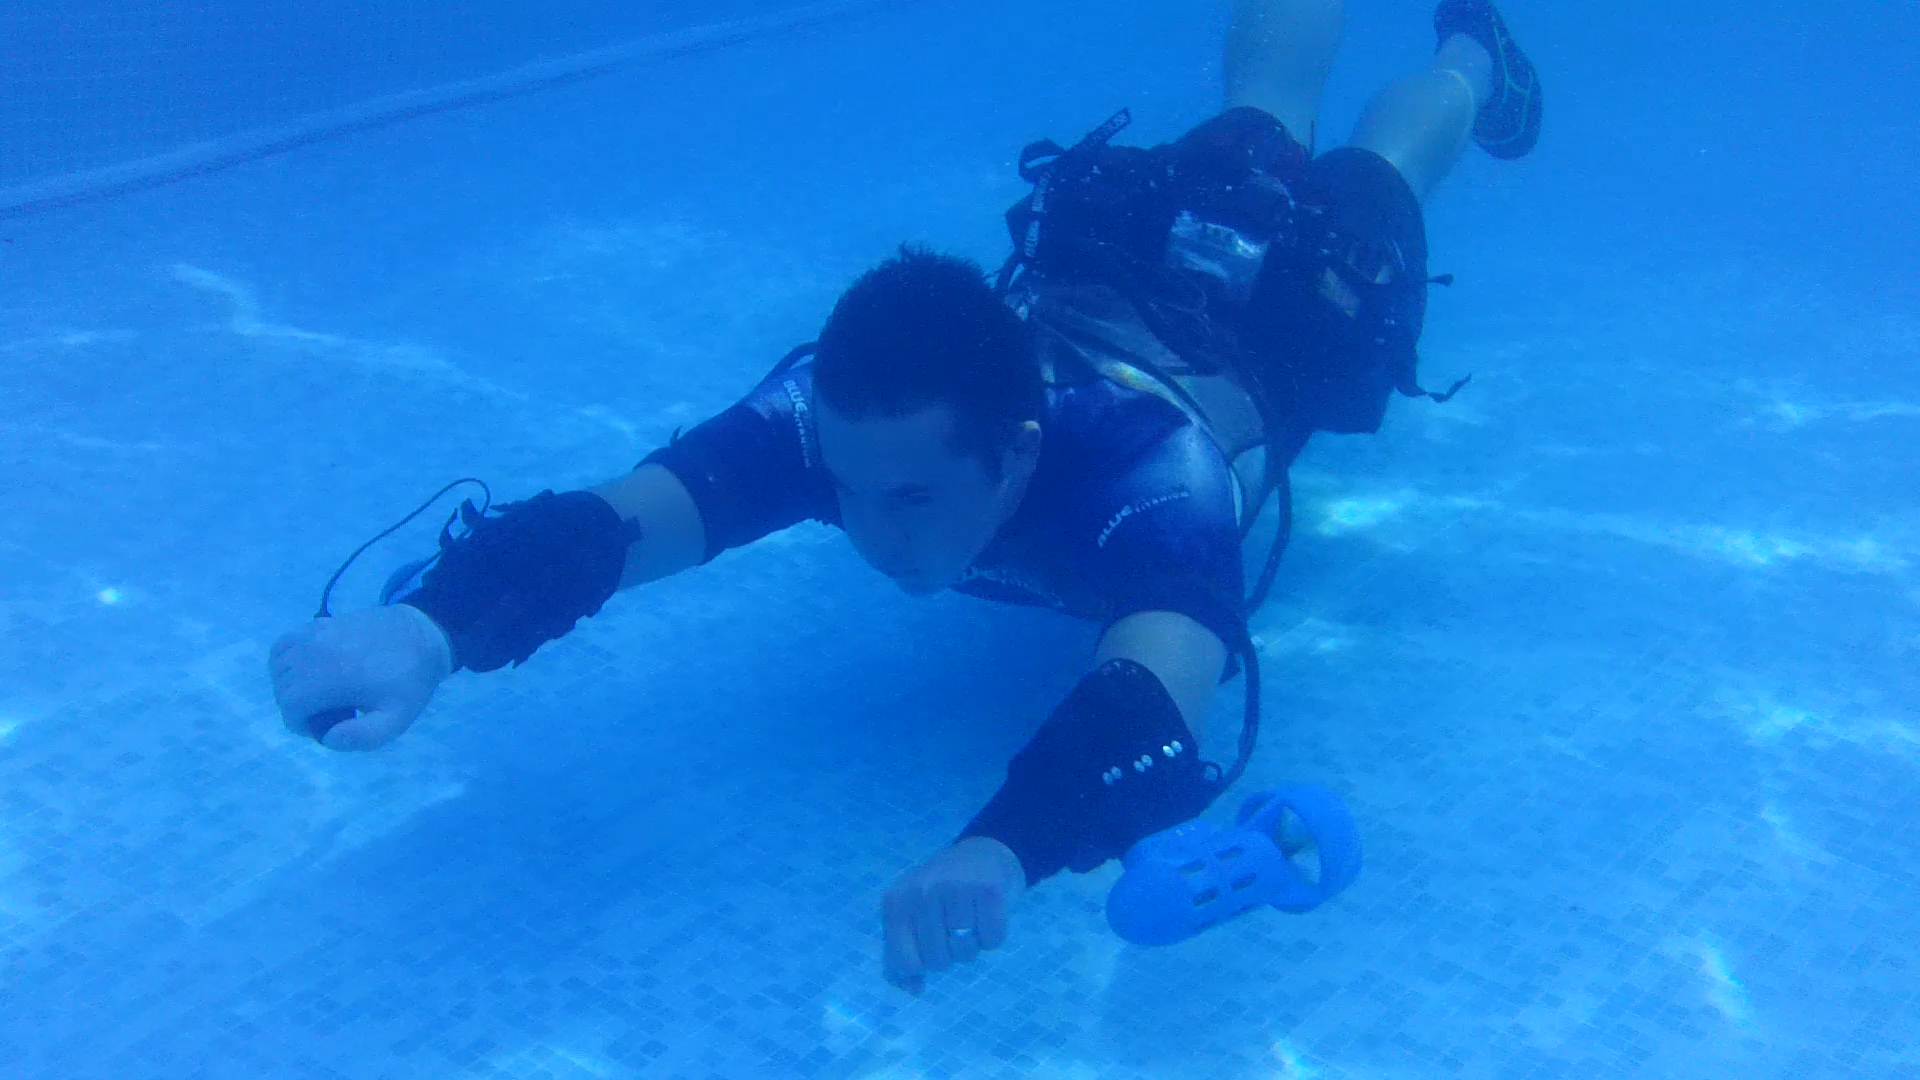 Now you can swim like superman using the underwater jet pack for Pack swimming